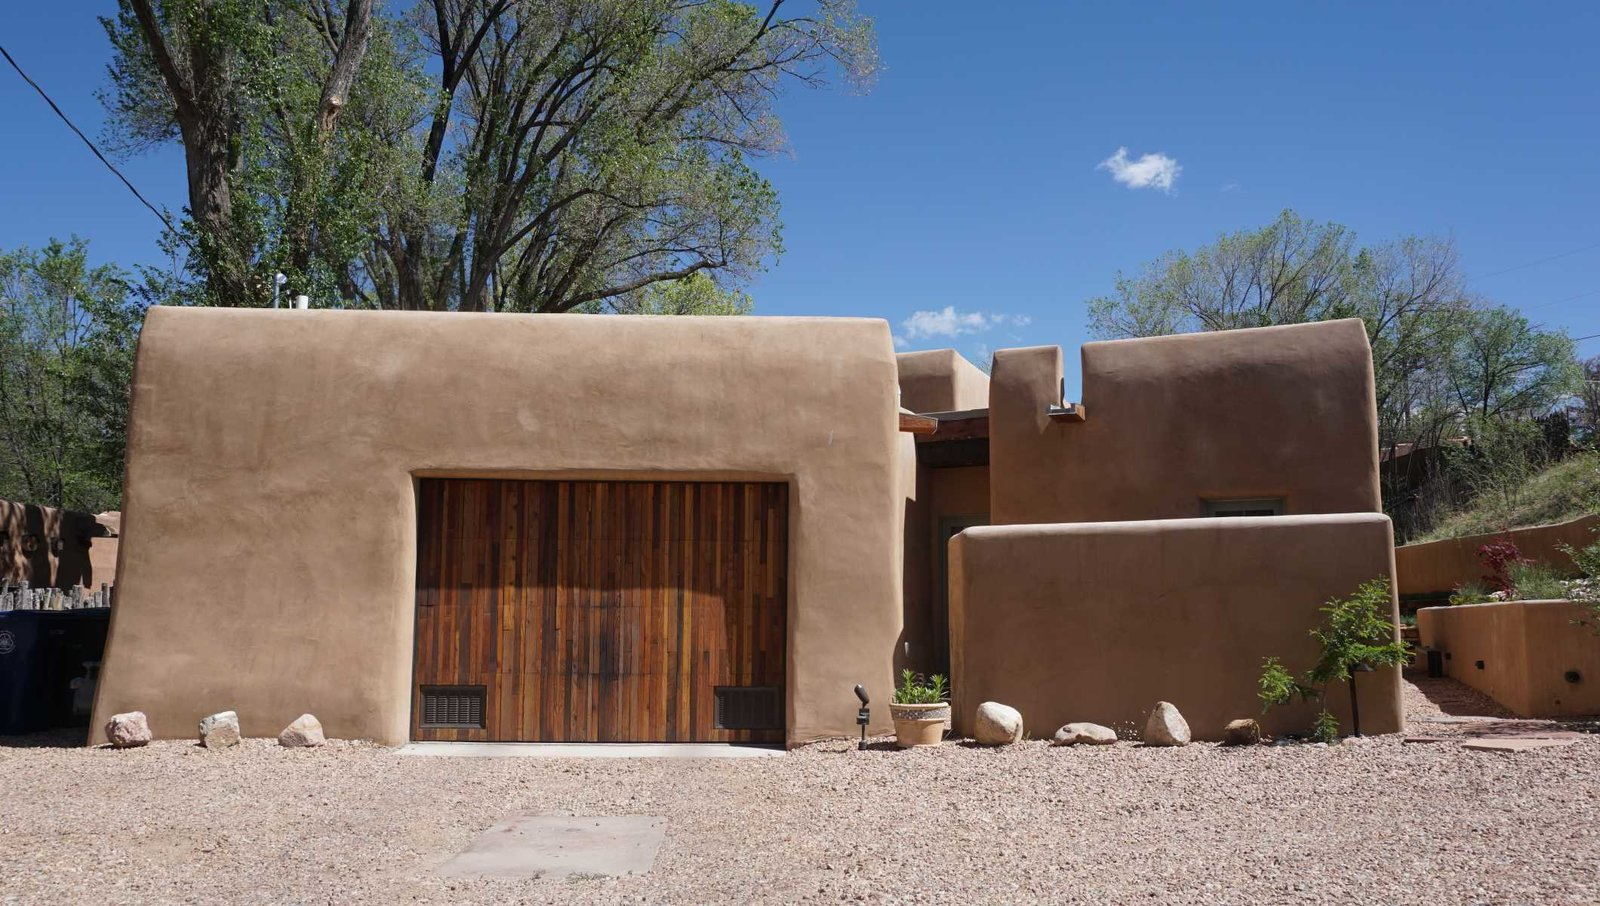 Exterior, House Building Type, Stucco Siding Material, and Wood Siding Material Front Street View  Santa Fe East Side Home by Ju Tan